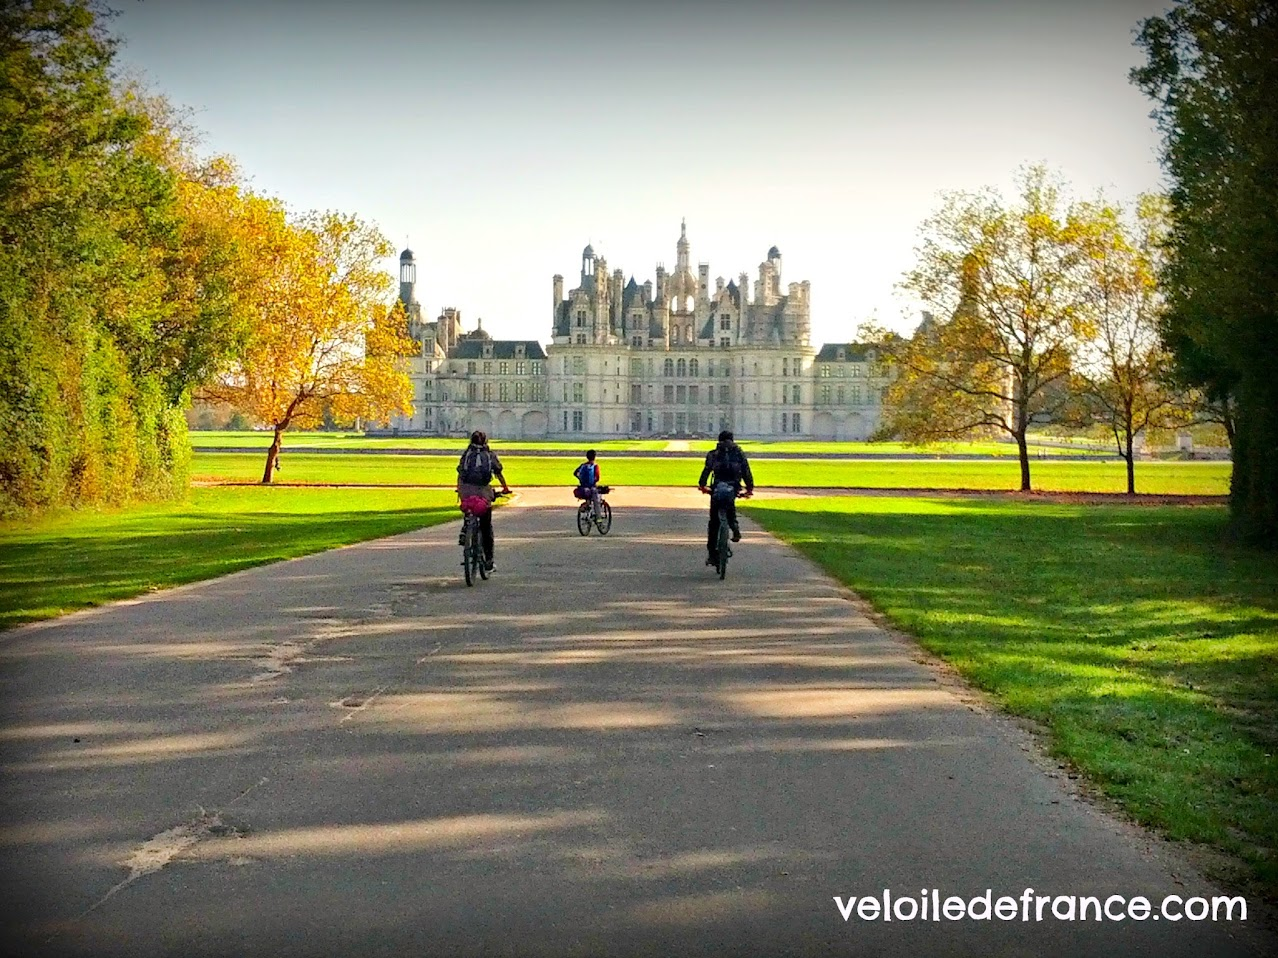 Château de Chambord - Cycling guide from Blois to the Château de Chambord by veloiledefrance.com